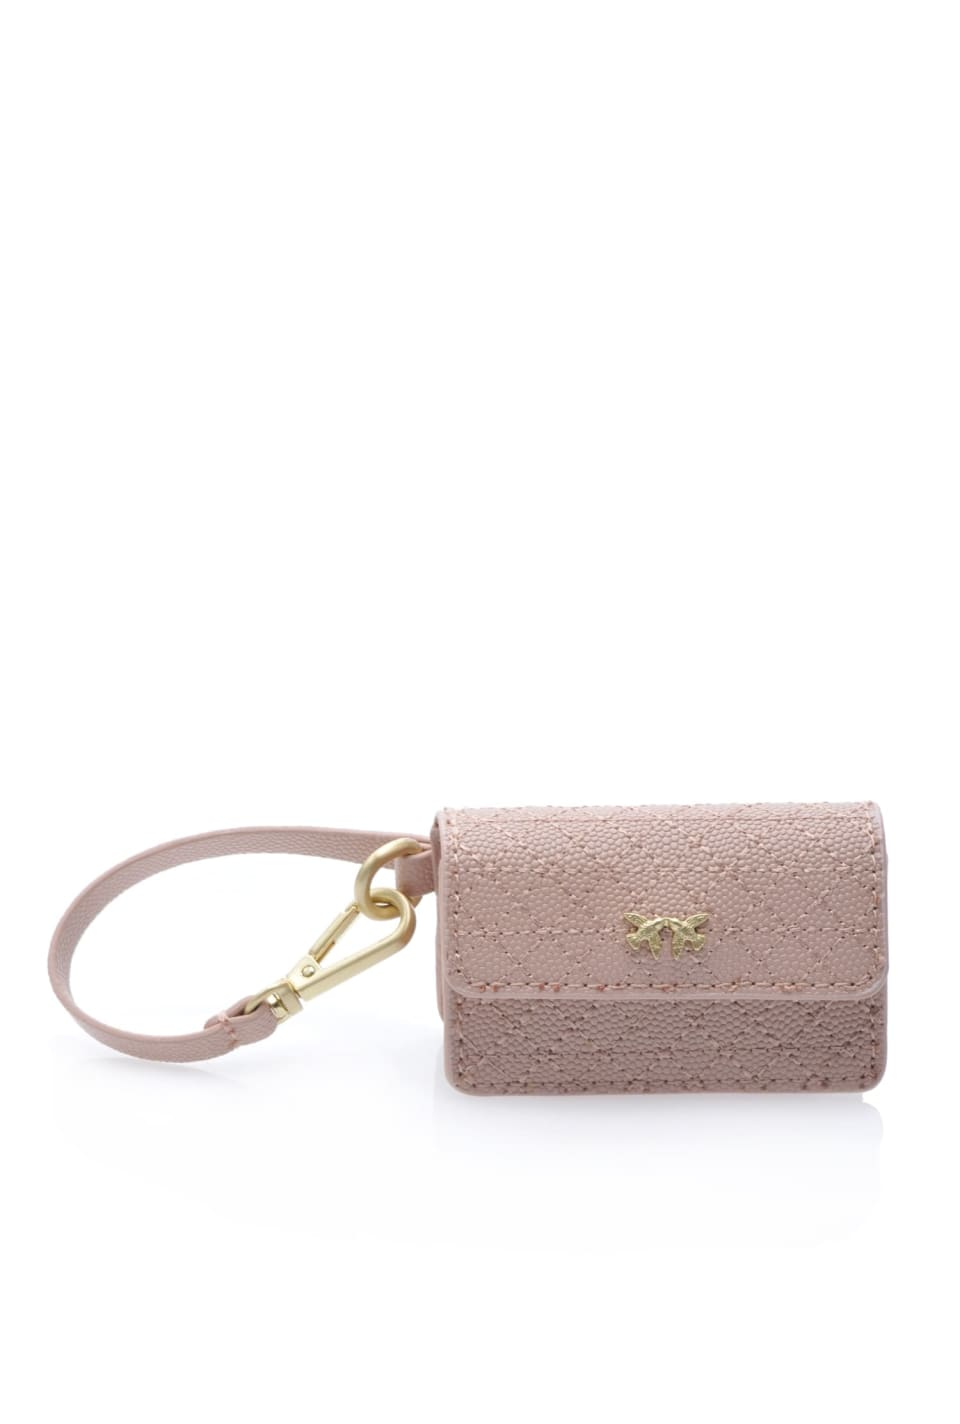 Baby Charm Bag in pelle caviar